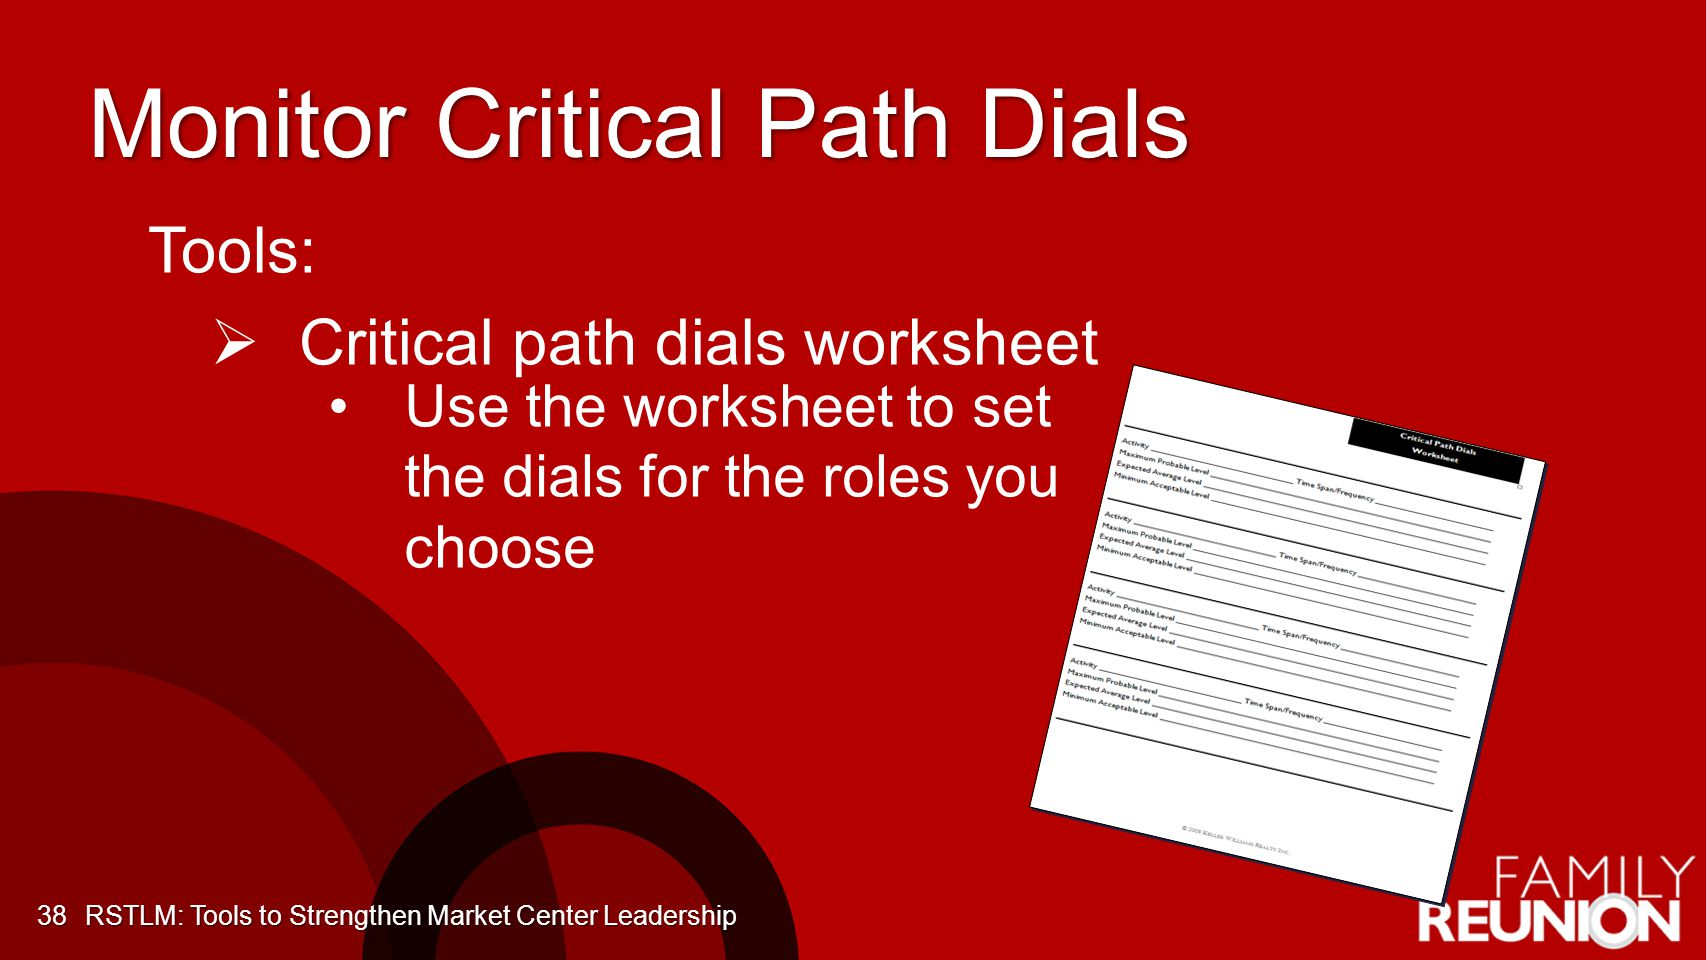 Monitor Critical Path Dials 38 Tools: Critical path dials worksheet Use the worksheet to set the dials for the roles you choose RSTLM: Tools to Streng